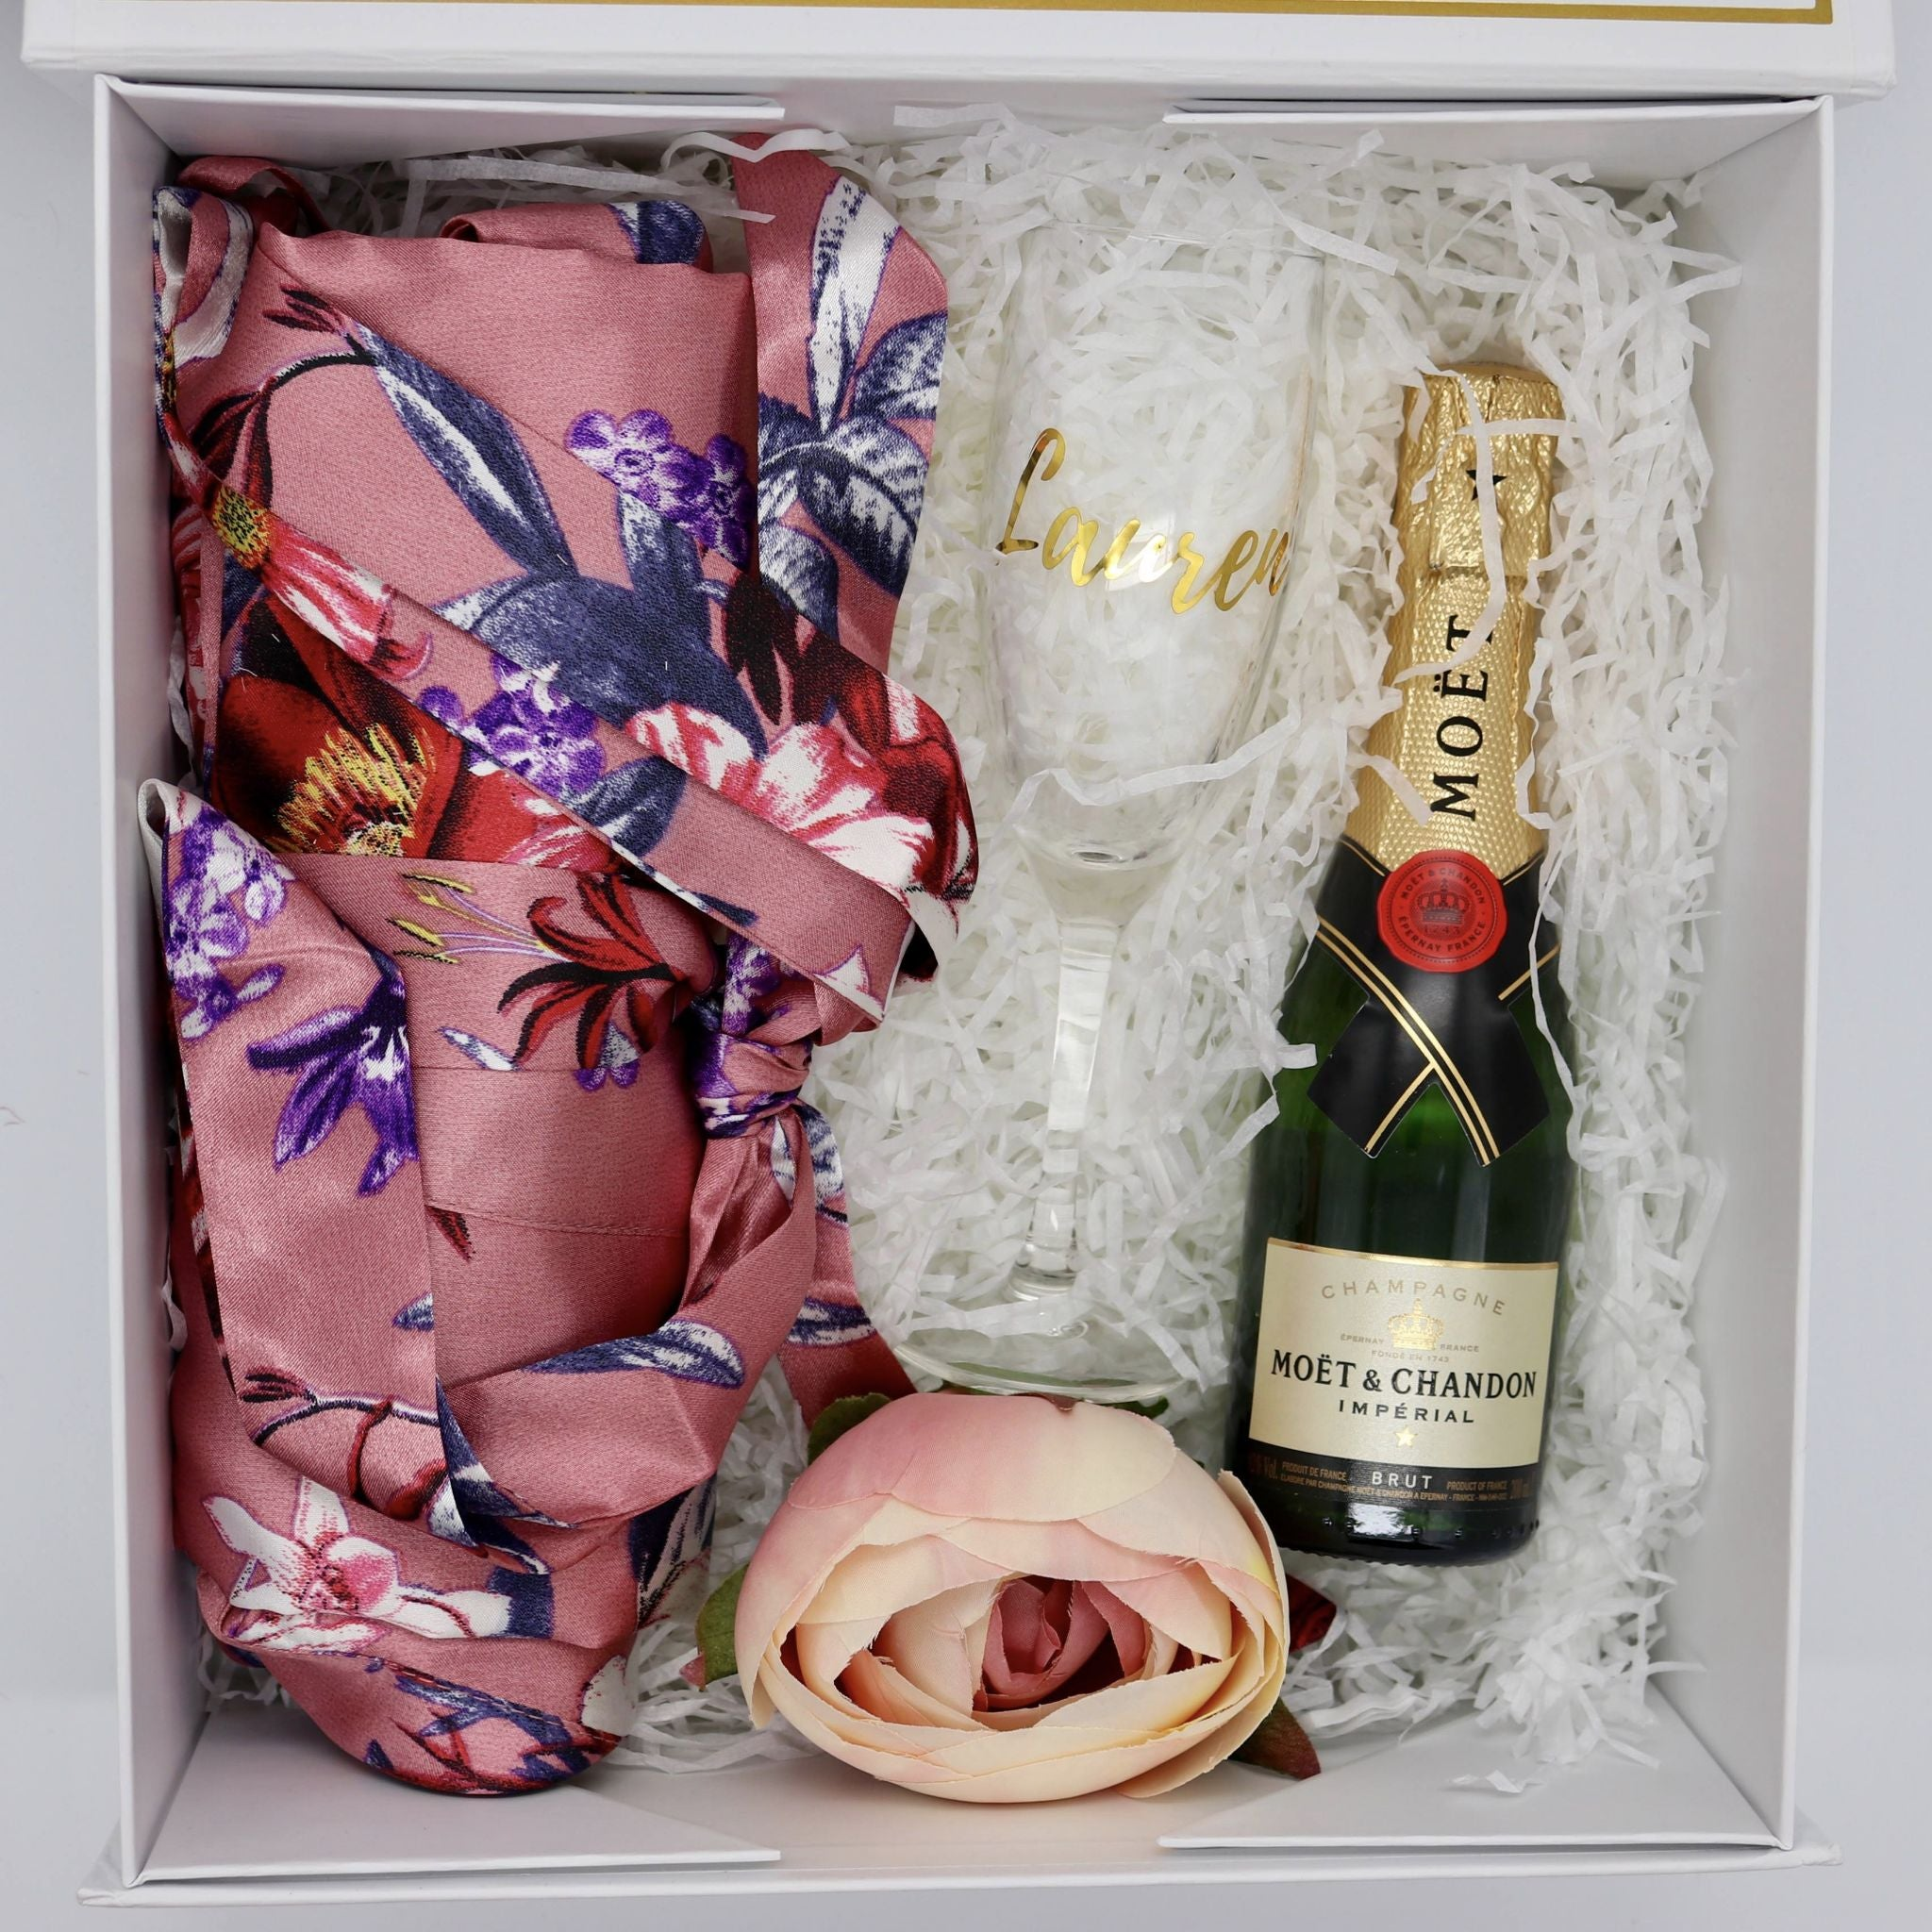 The Marigold Gift Box for Maid of Honour